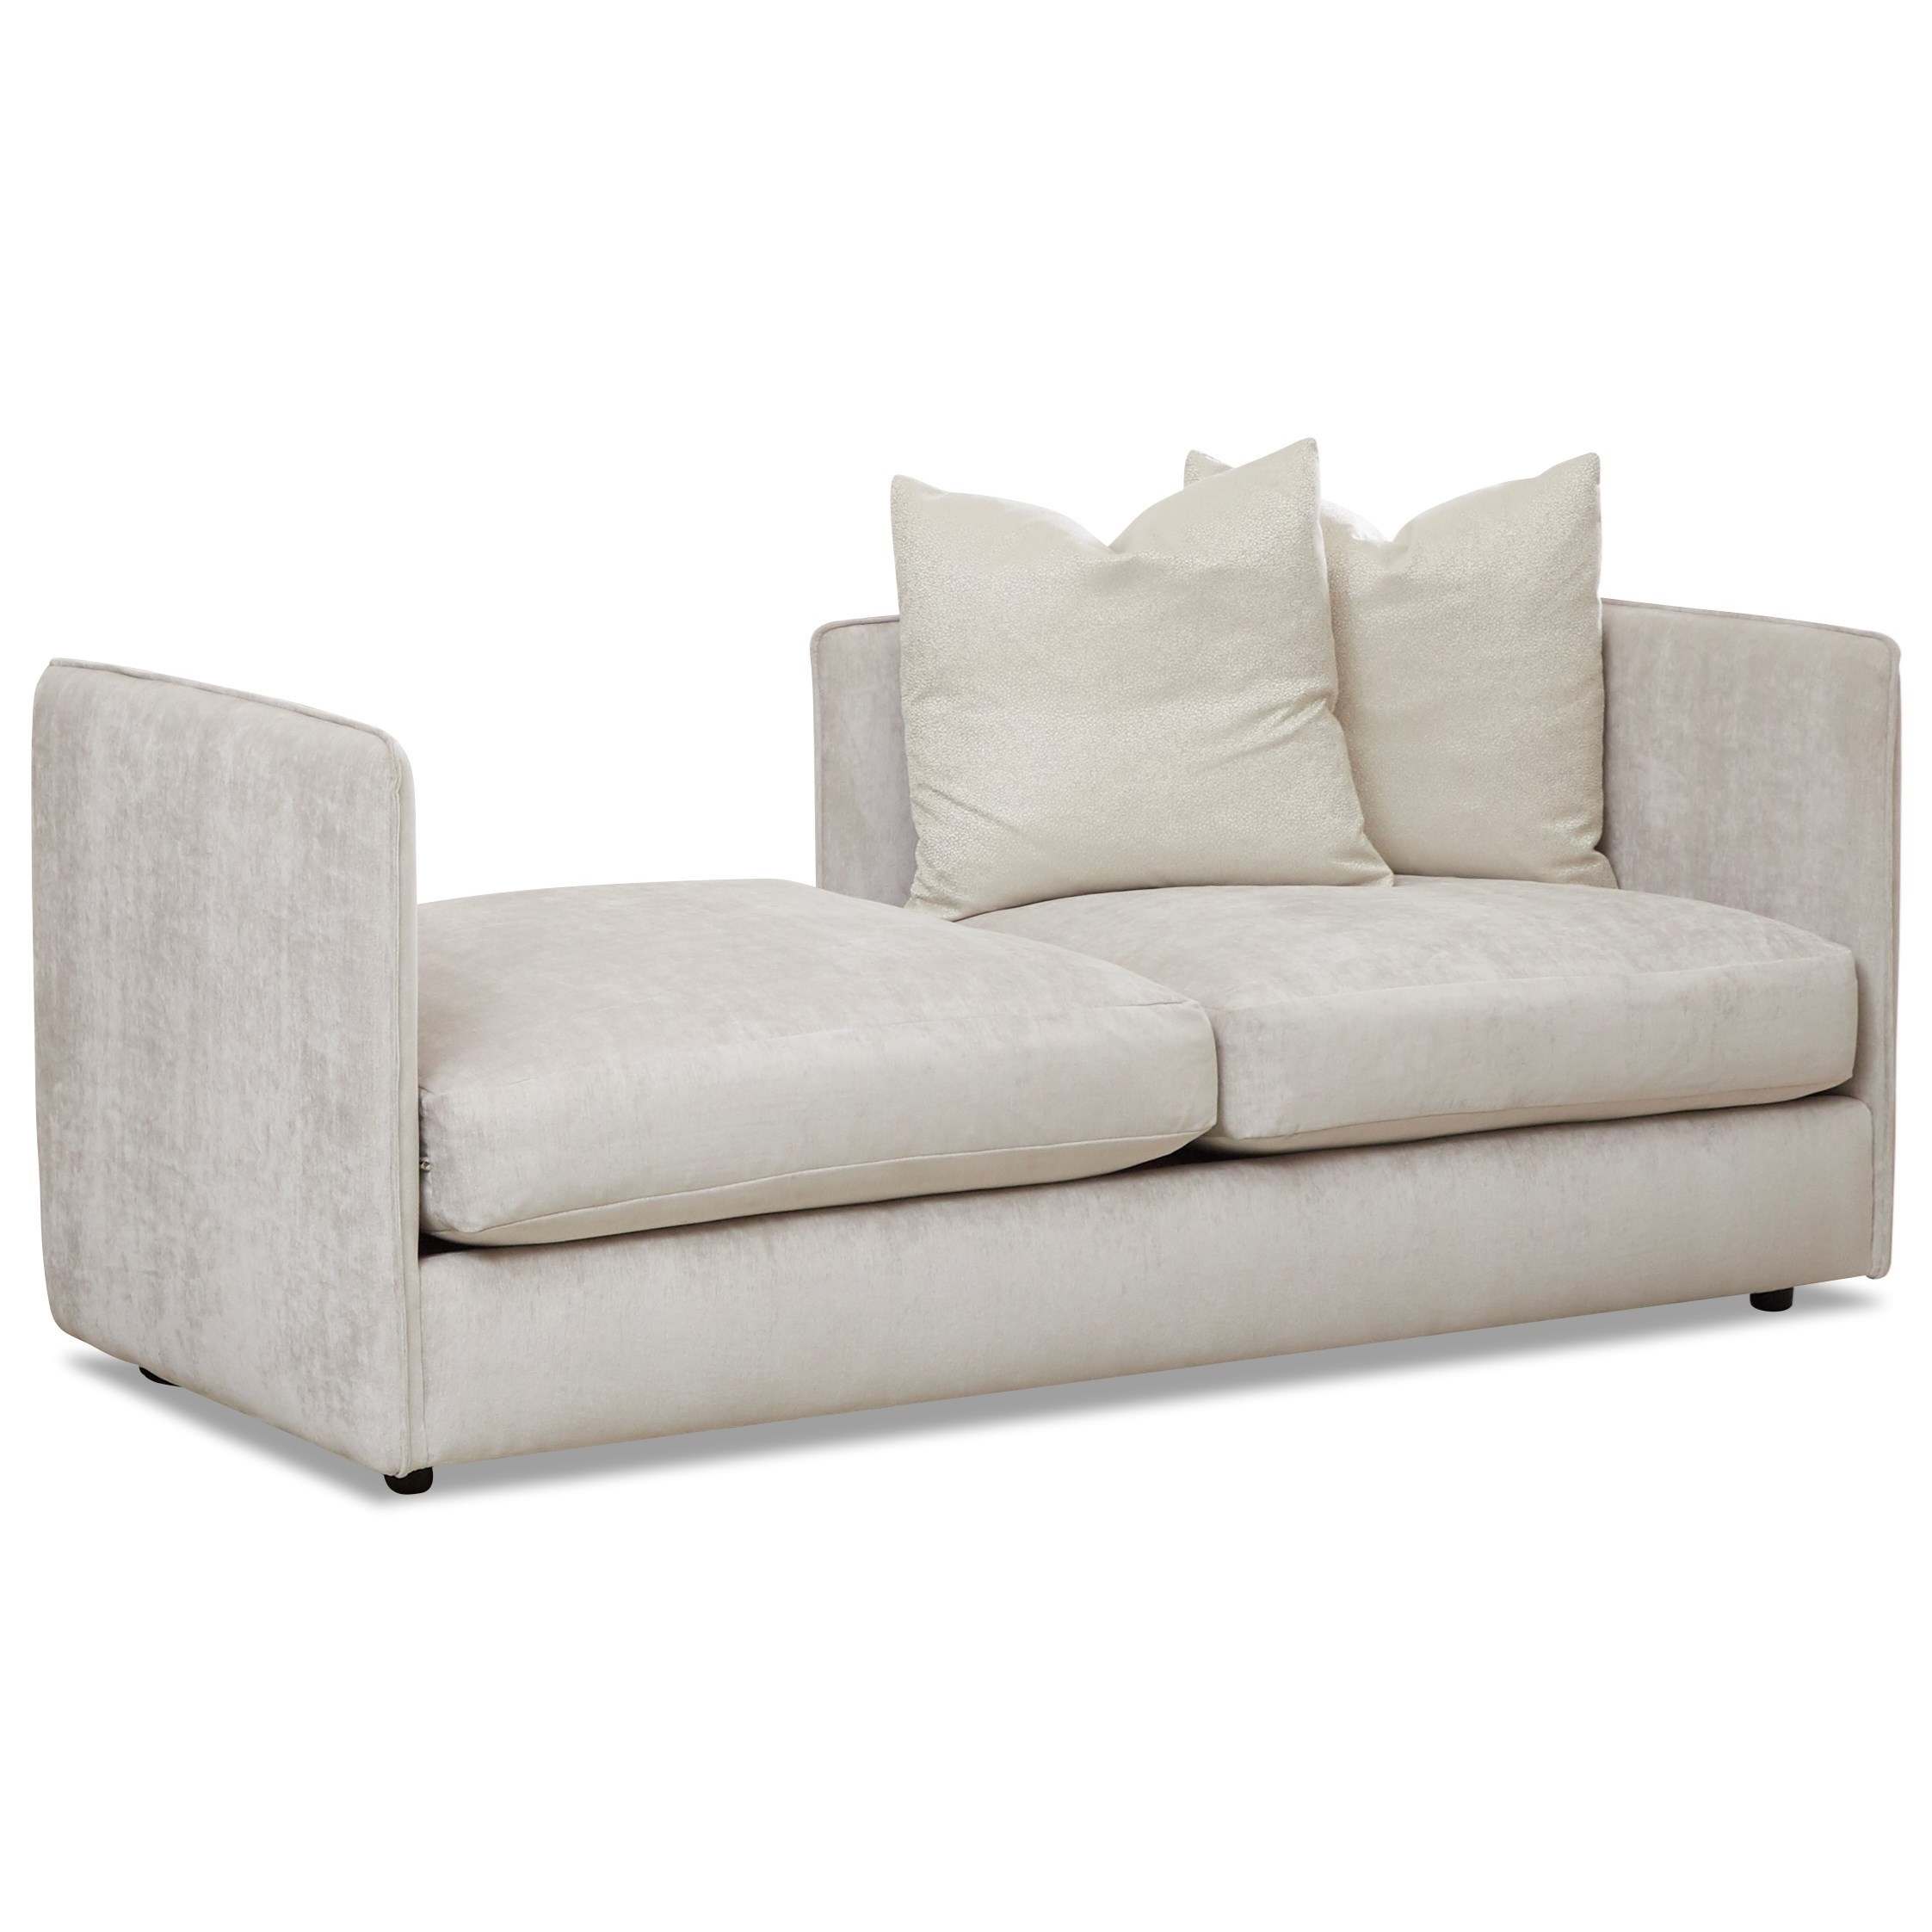 Ansel Chaise Lounge by Klaussner at Johnny Janosik